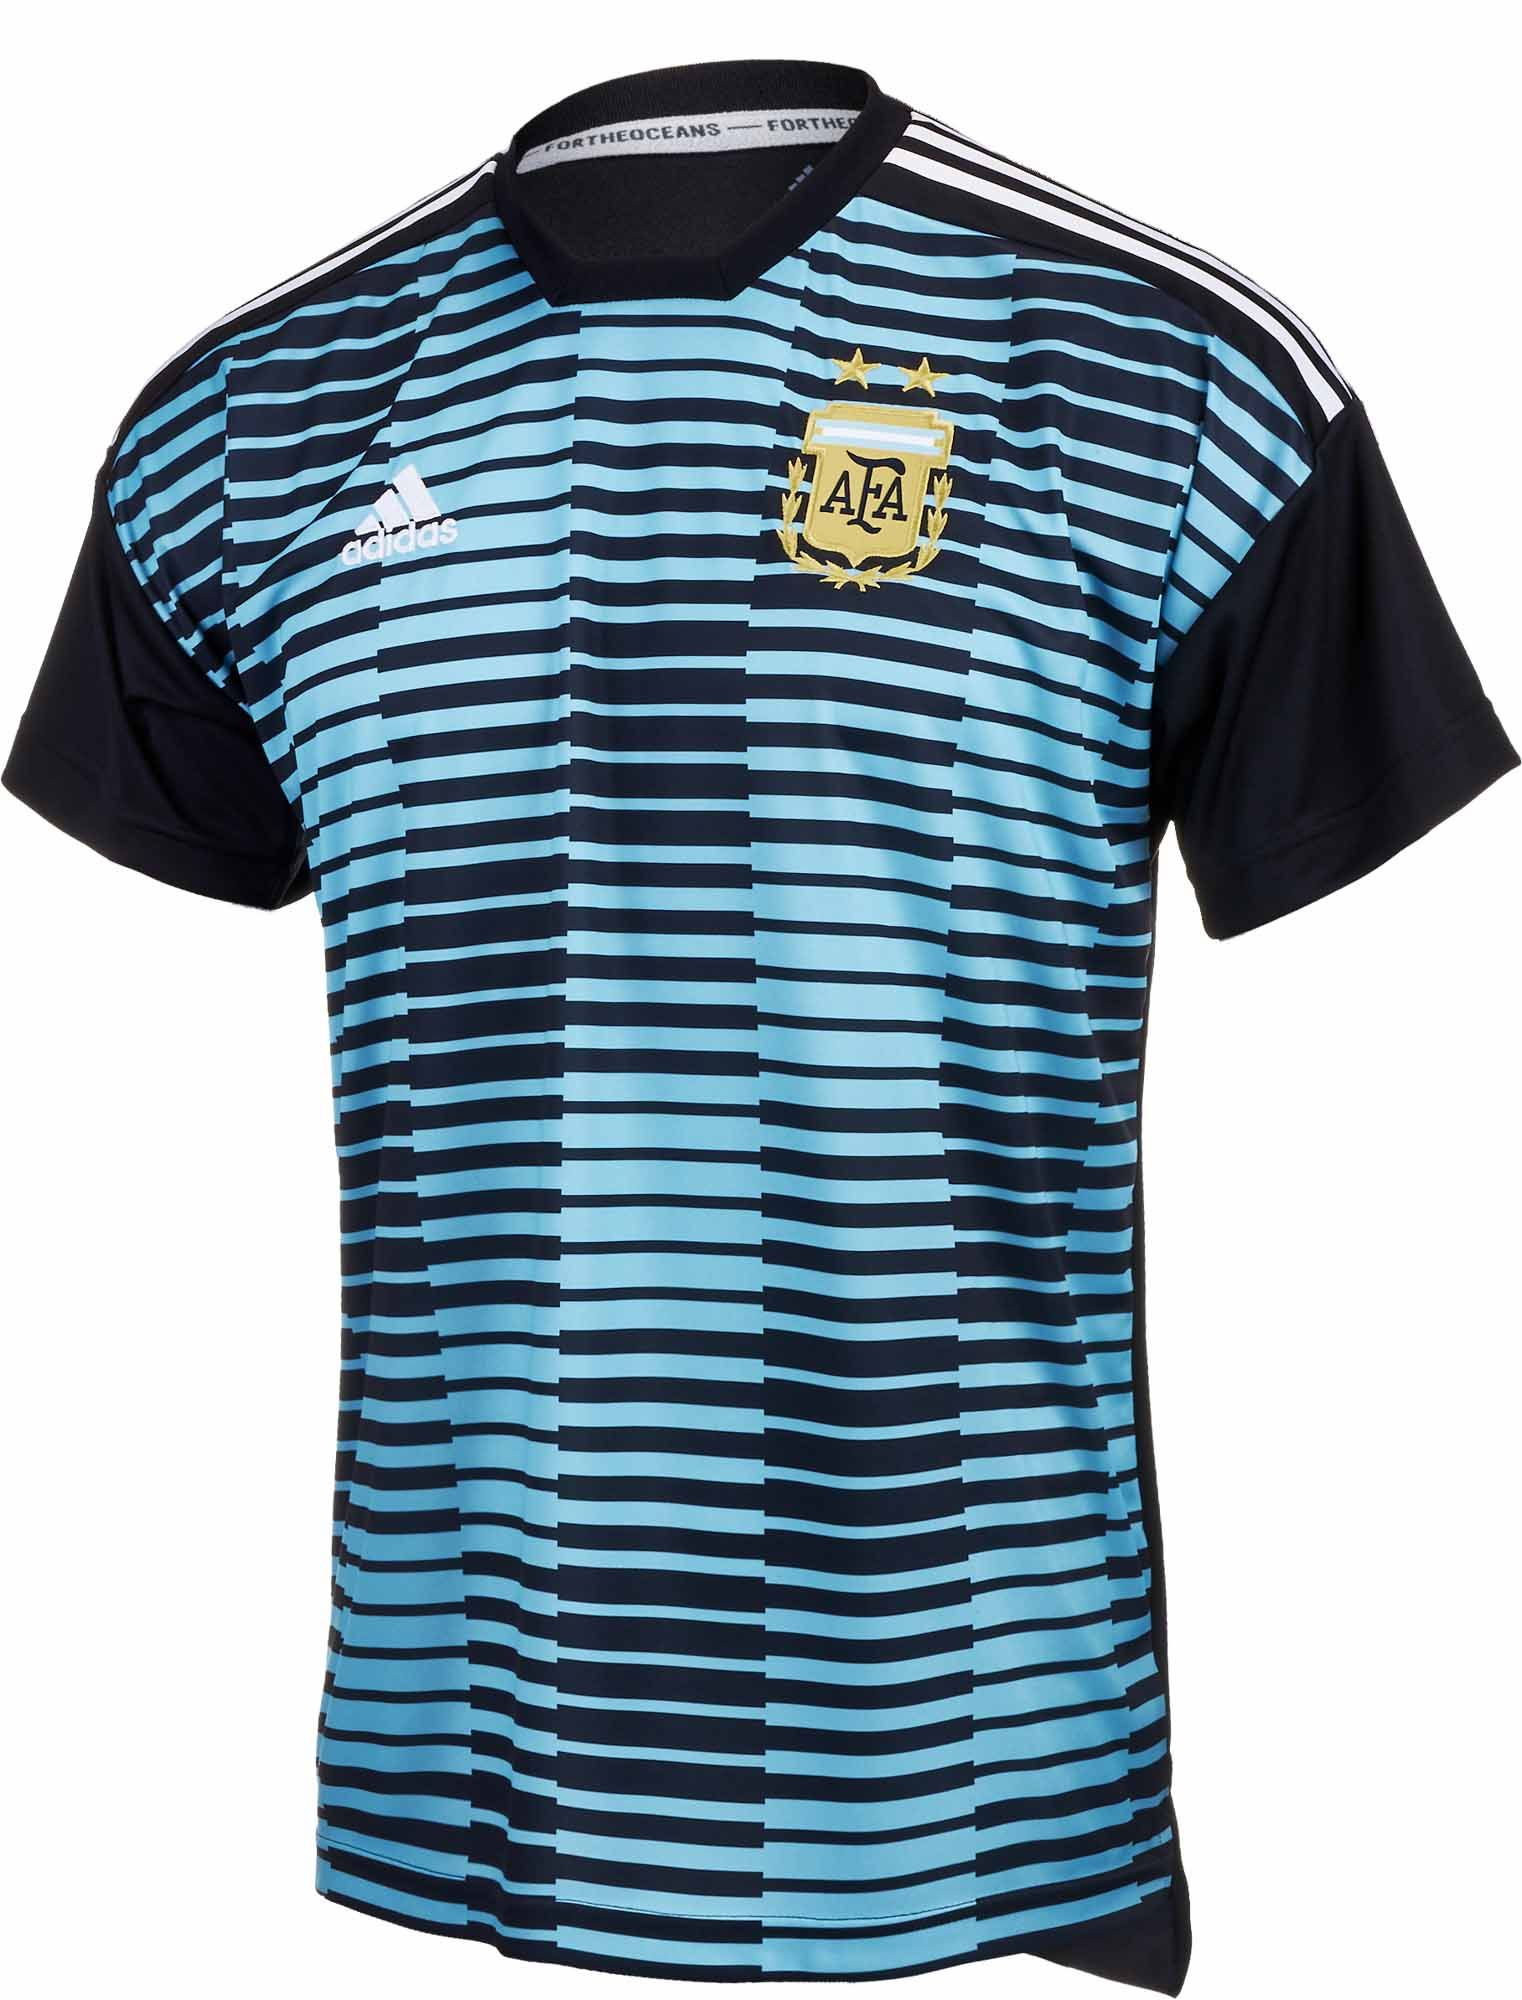 Kids adidas Argentina Prematch Jersey for 2018 19. Buy it from SoccerPro 9112f1e56ca